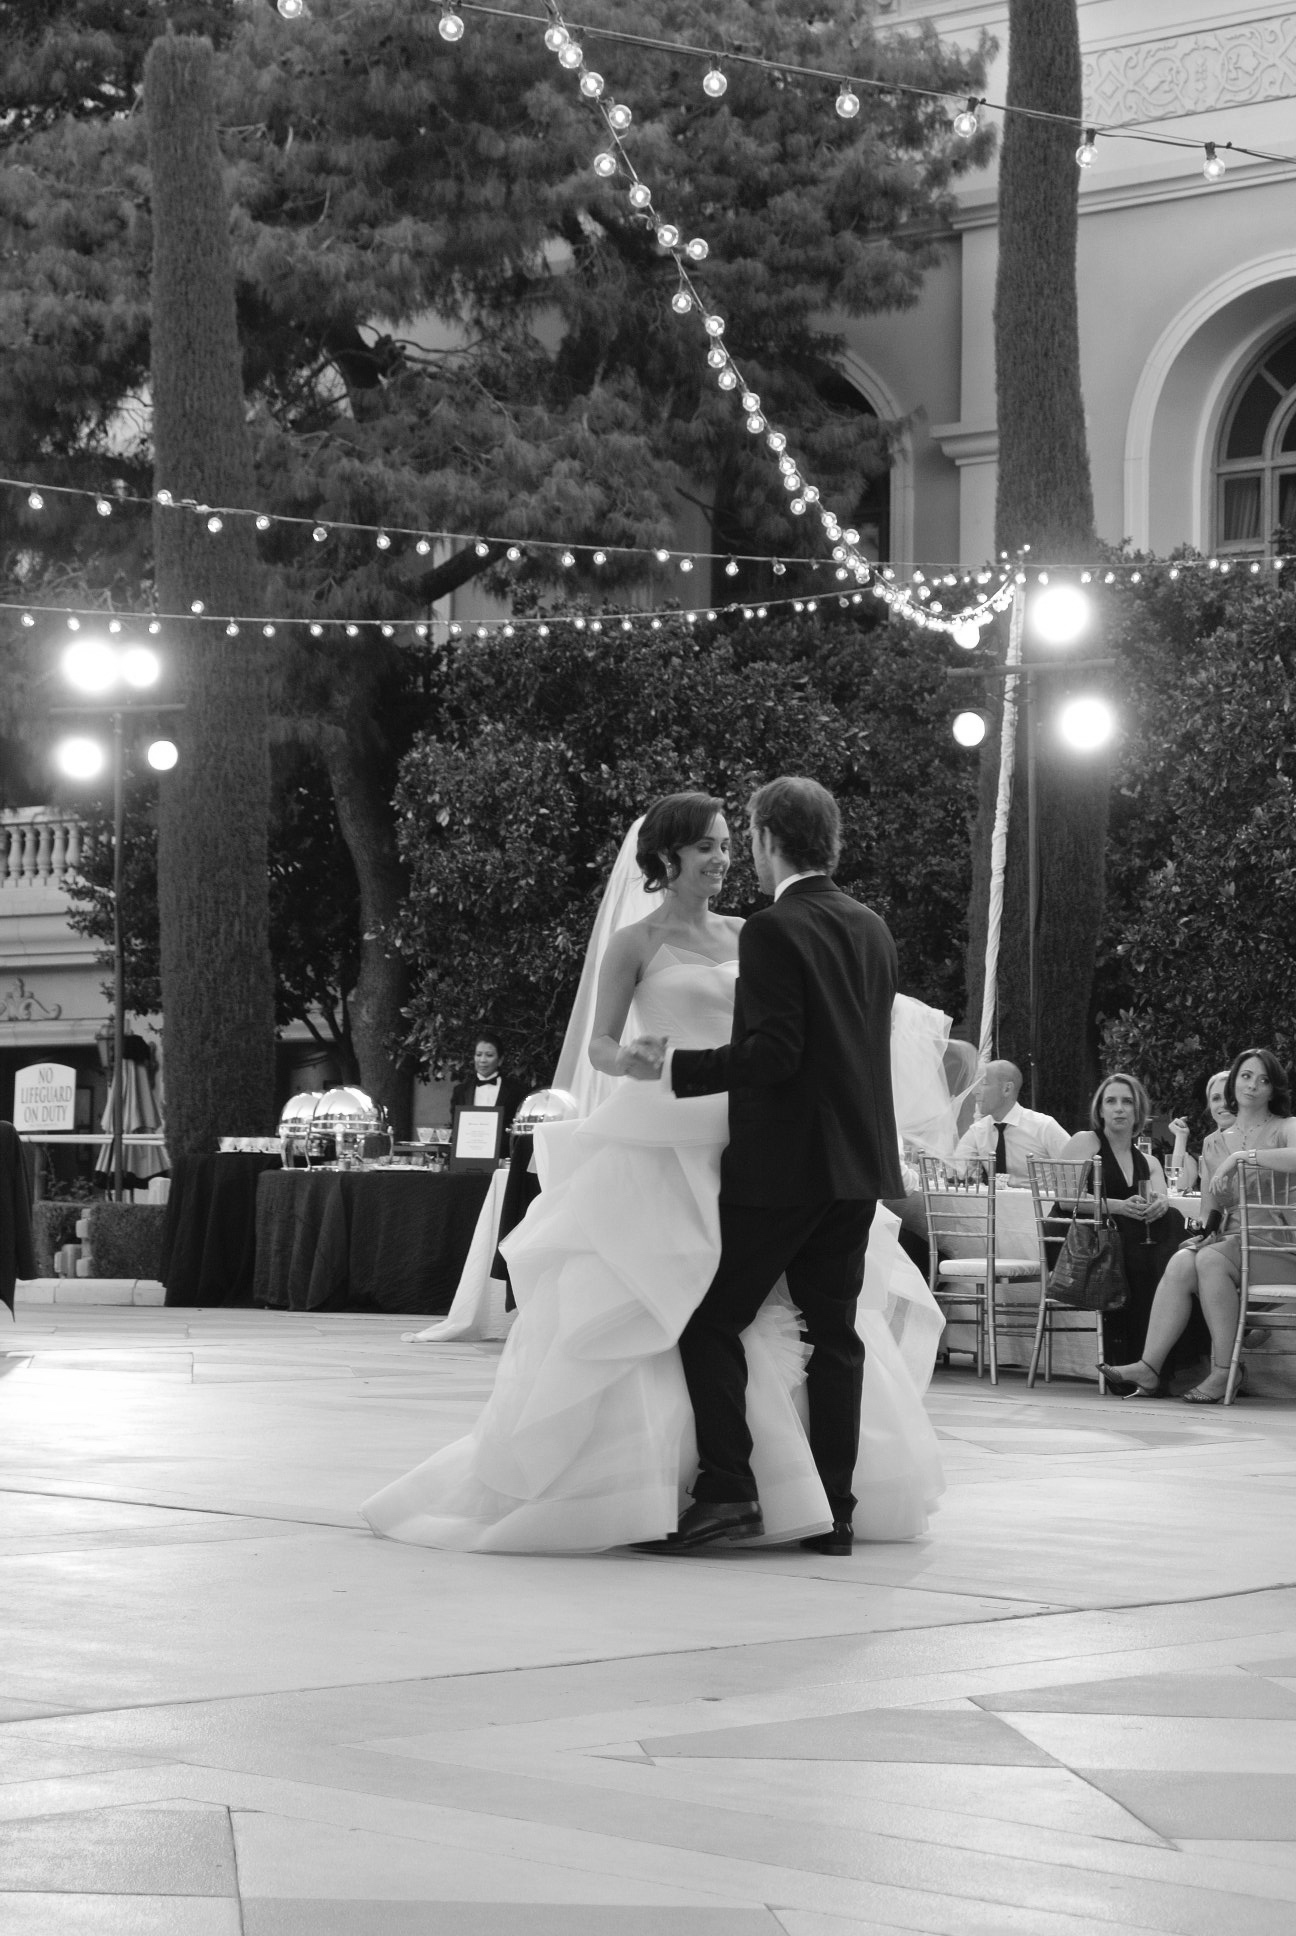 First Dance -  Las Vegas Wedding Planner Andrea Eppolito  |  Wedding at Bellagio Las Vegas